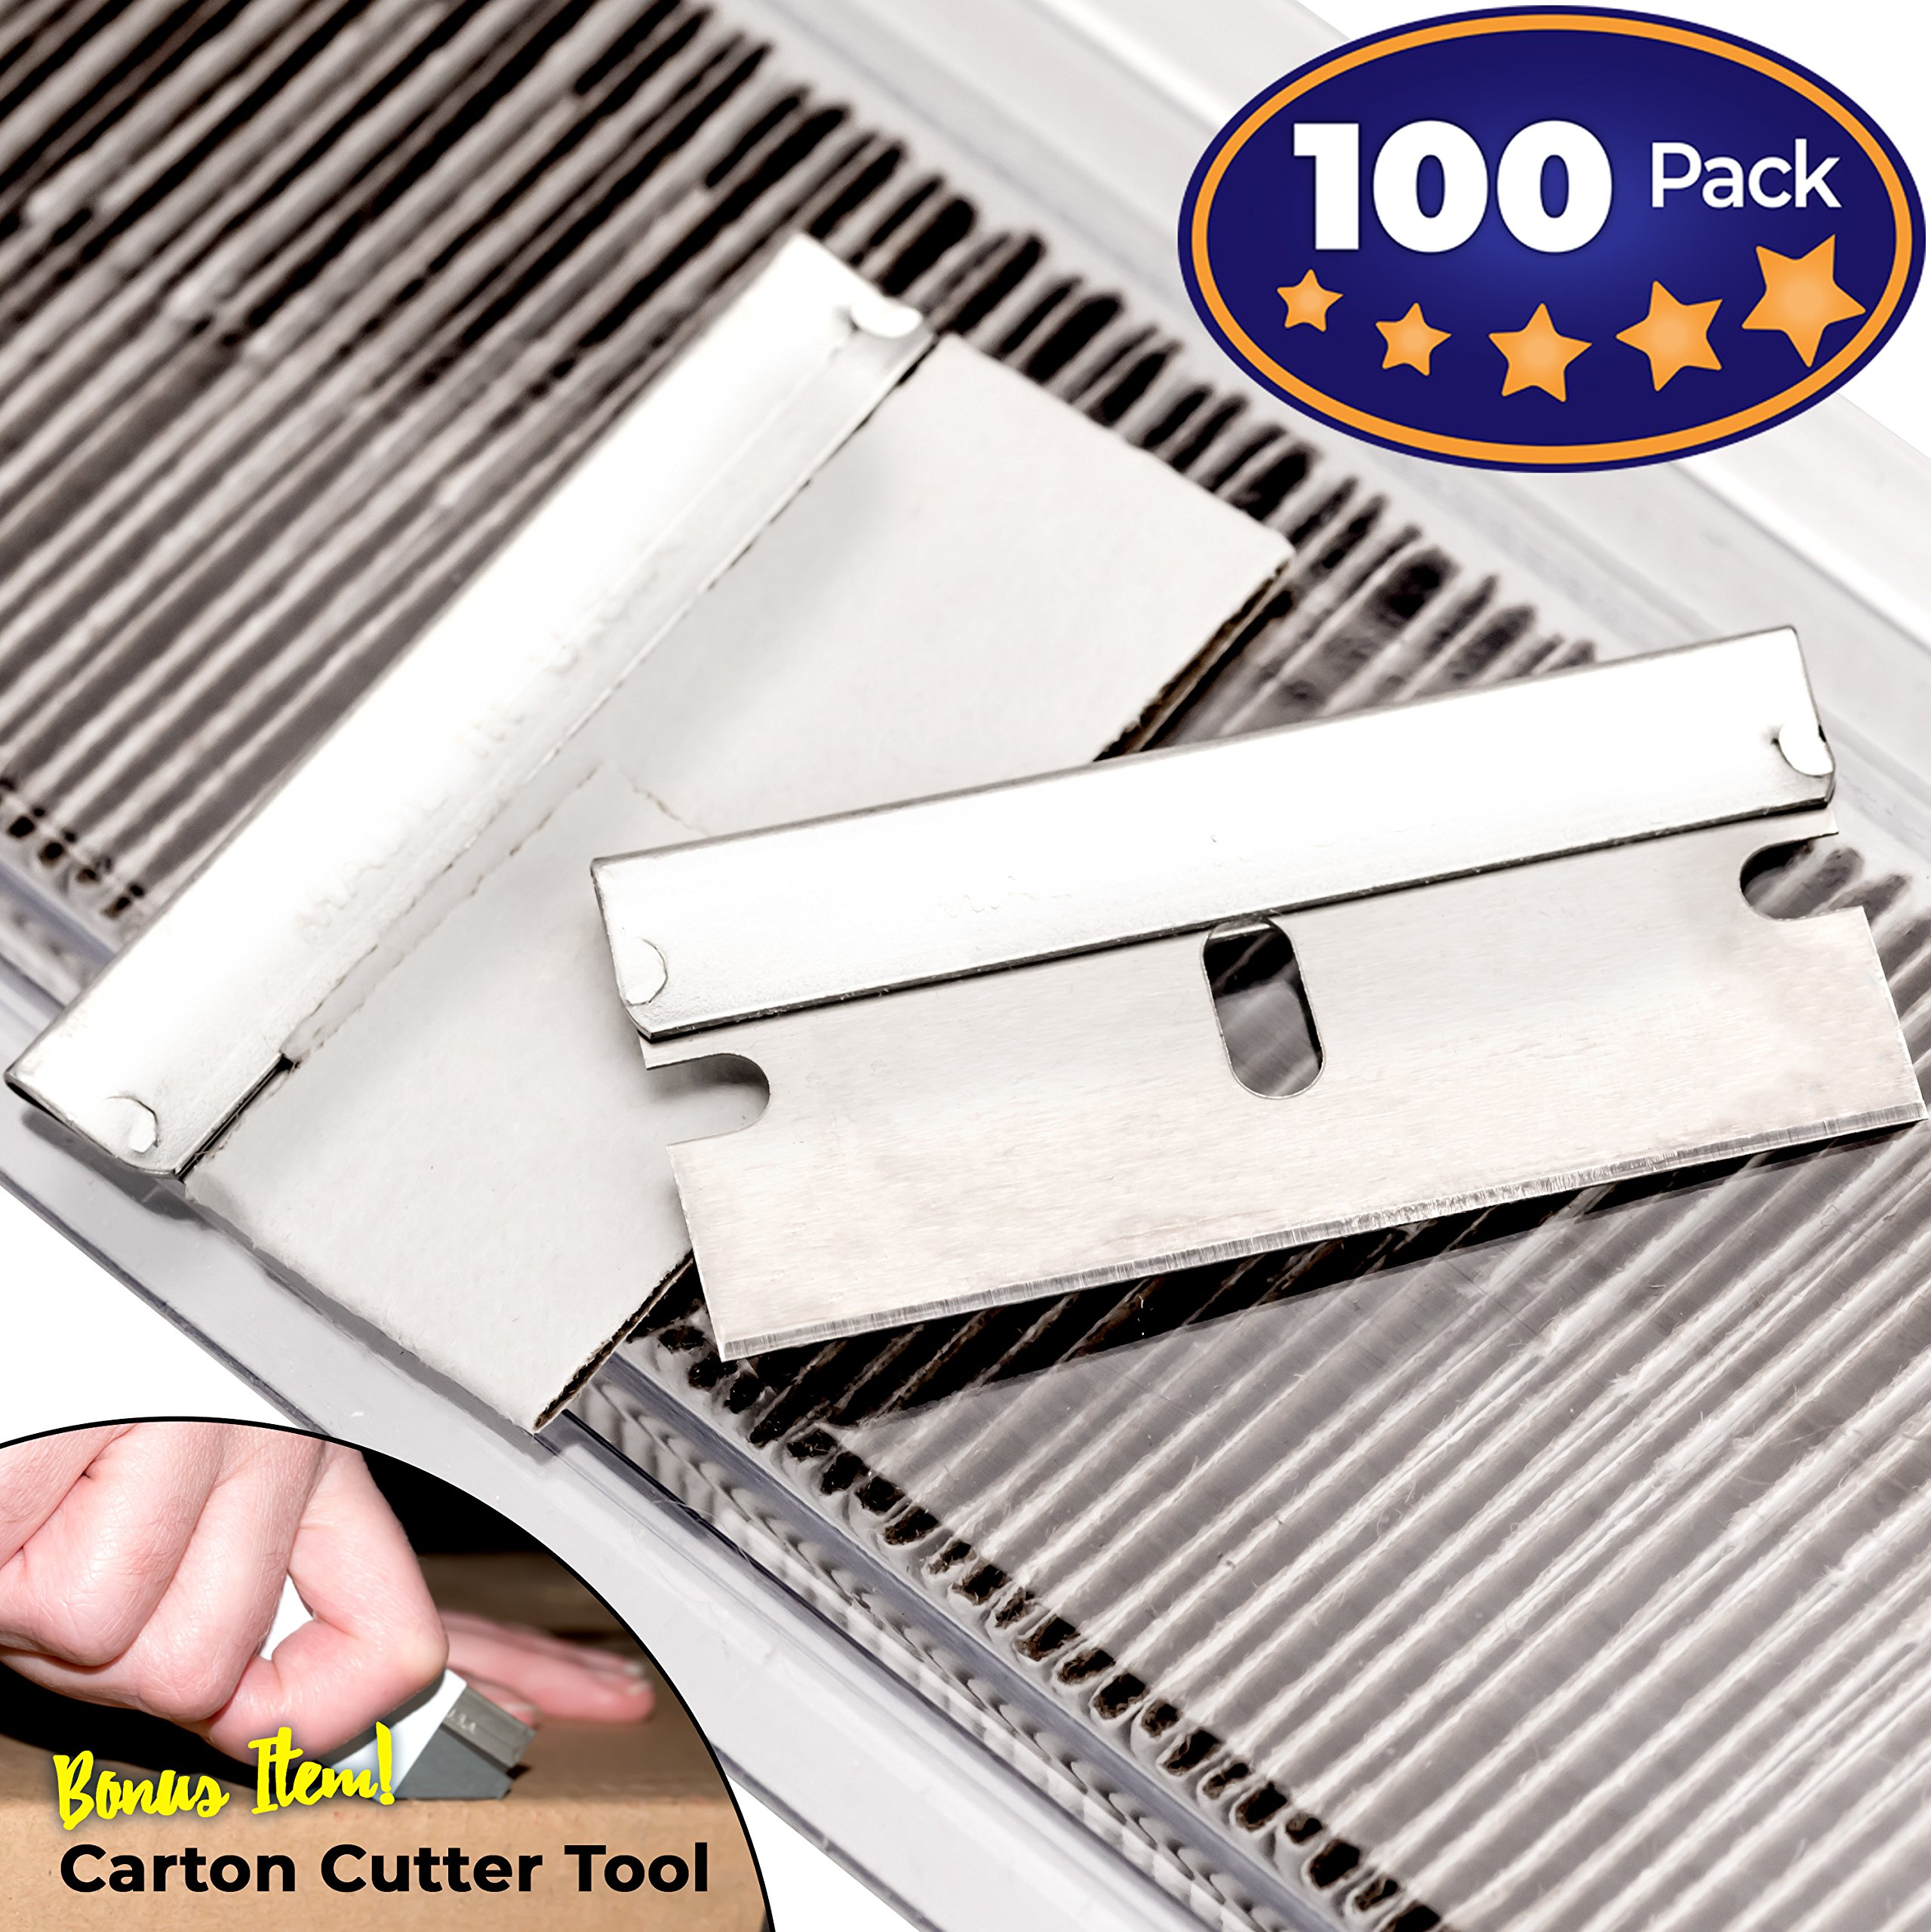 Ultra Sharp, USA-Made Steel Razor Scraper Blades Bulk 100 Pack by Nova Supply with Bonus Carton Cutter Tool! Strong Single Edge 1.5 in Blade for Scrapers and Cutting Tools in a Safe, Reclosable Box